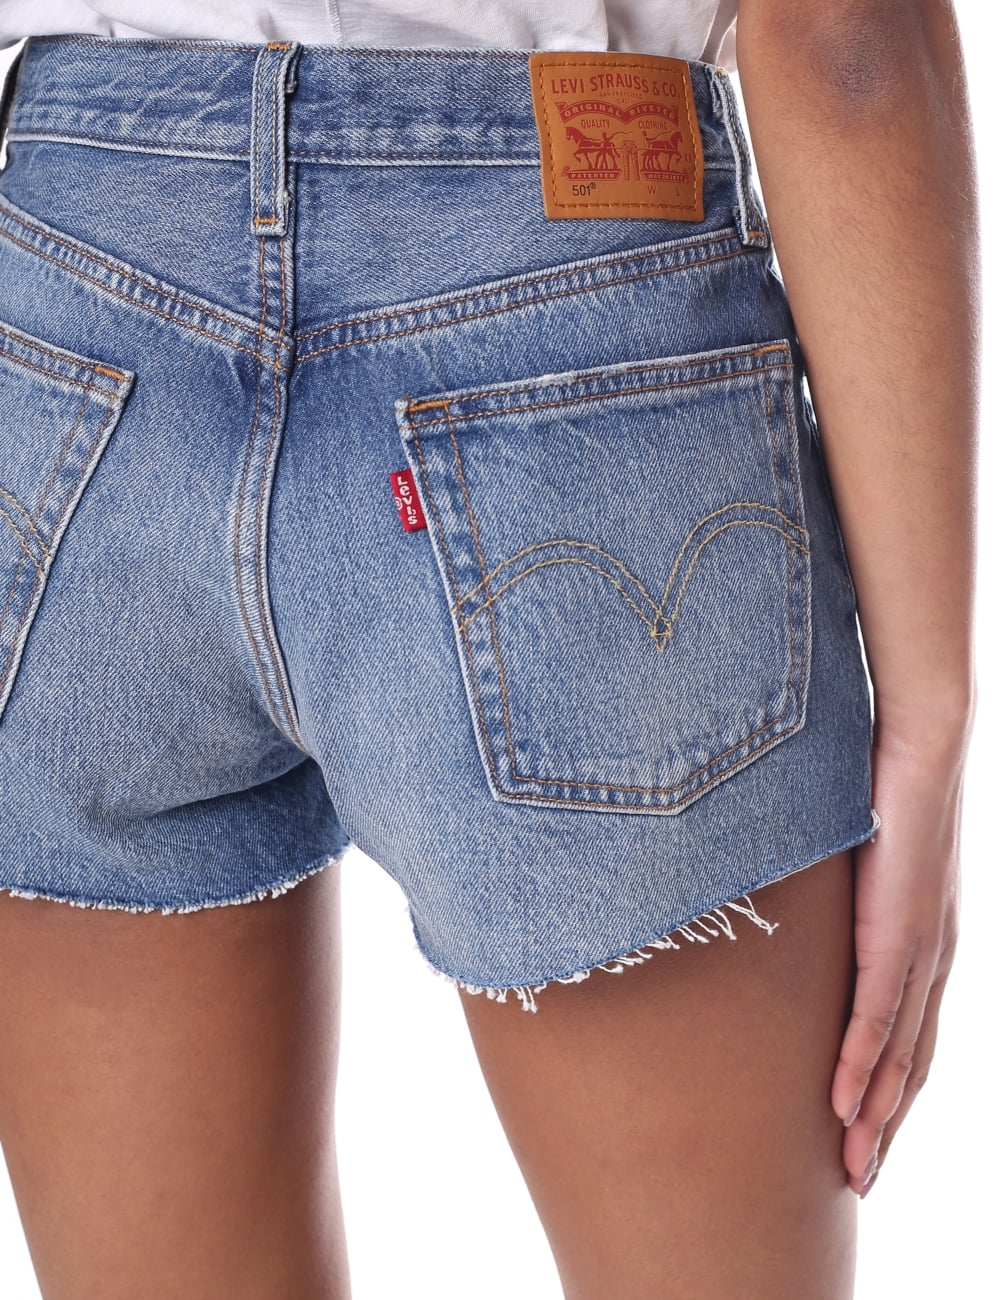 cec29b30 Levi's Women's Original 501 Cut Off Shorts